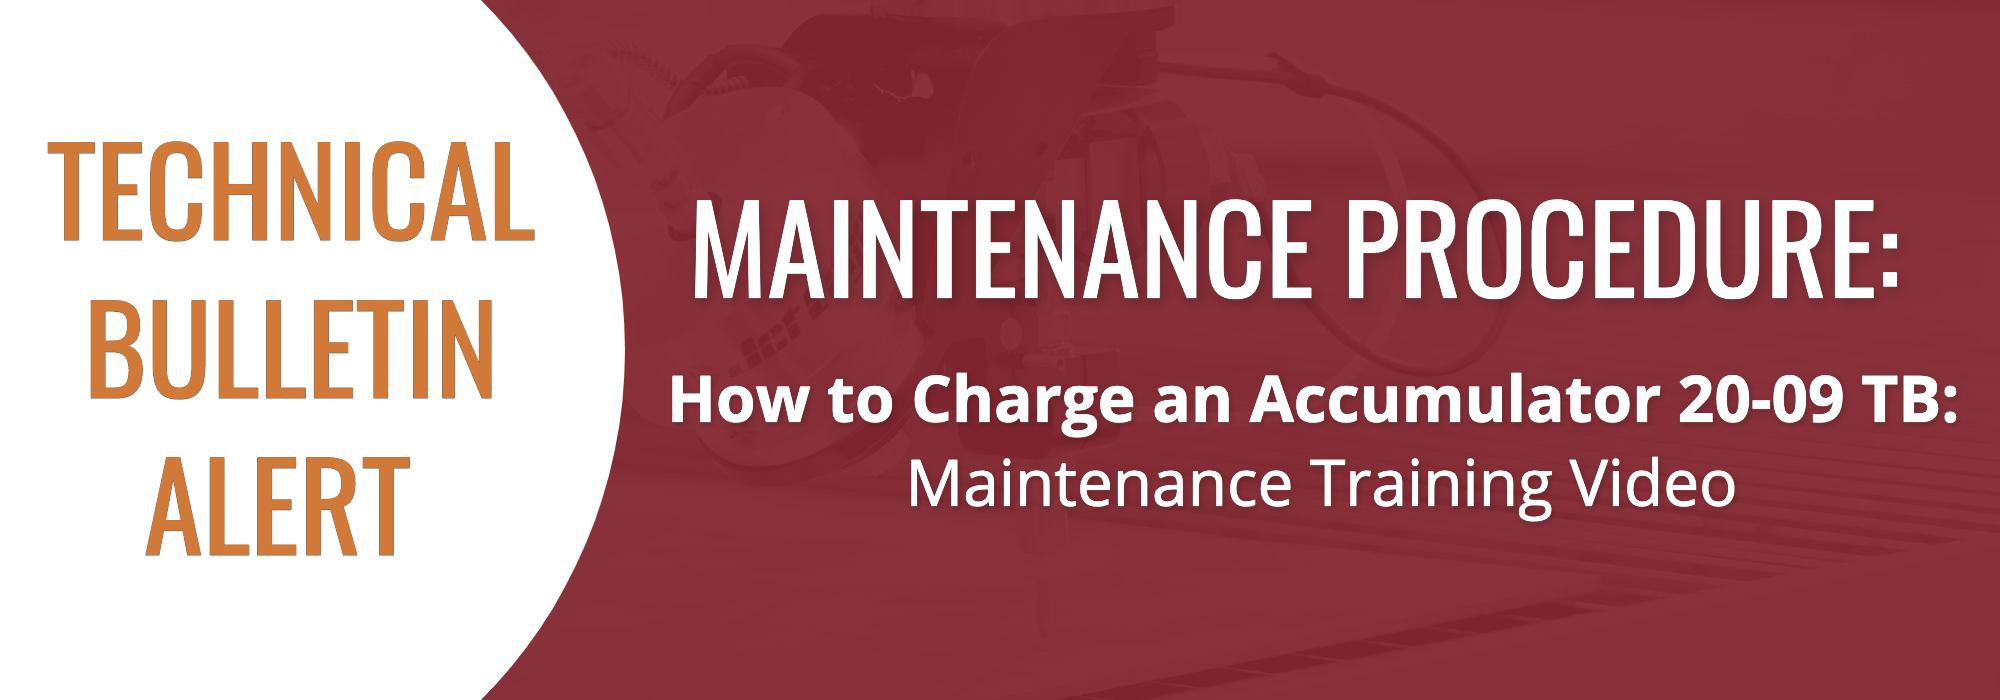 Technical Bulletin Alert - How to Charge an Accumulator